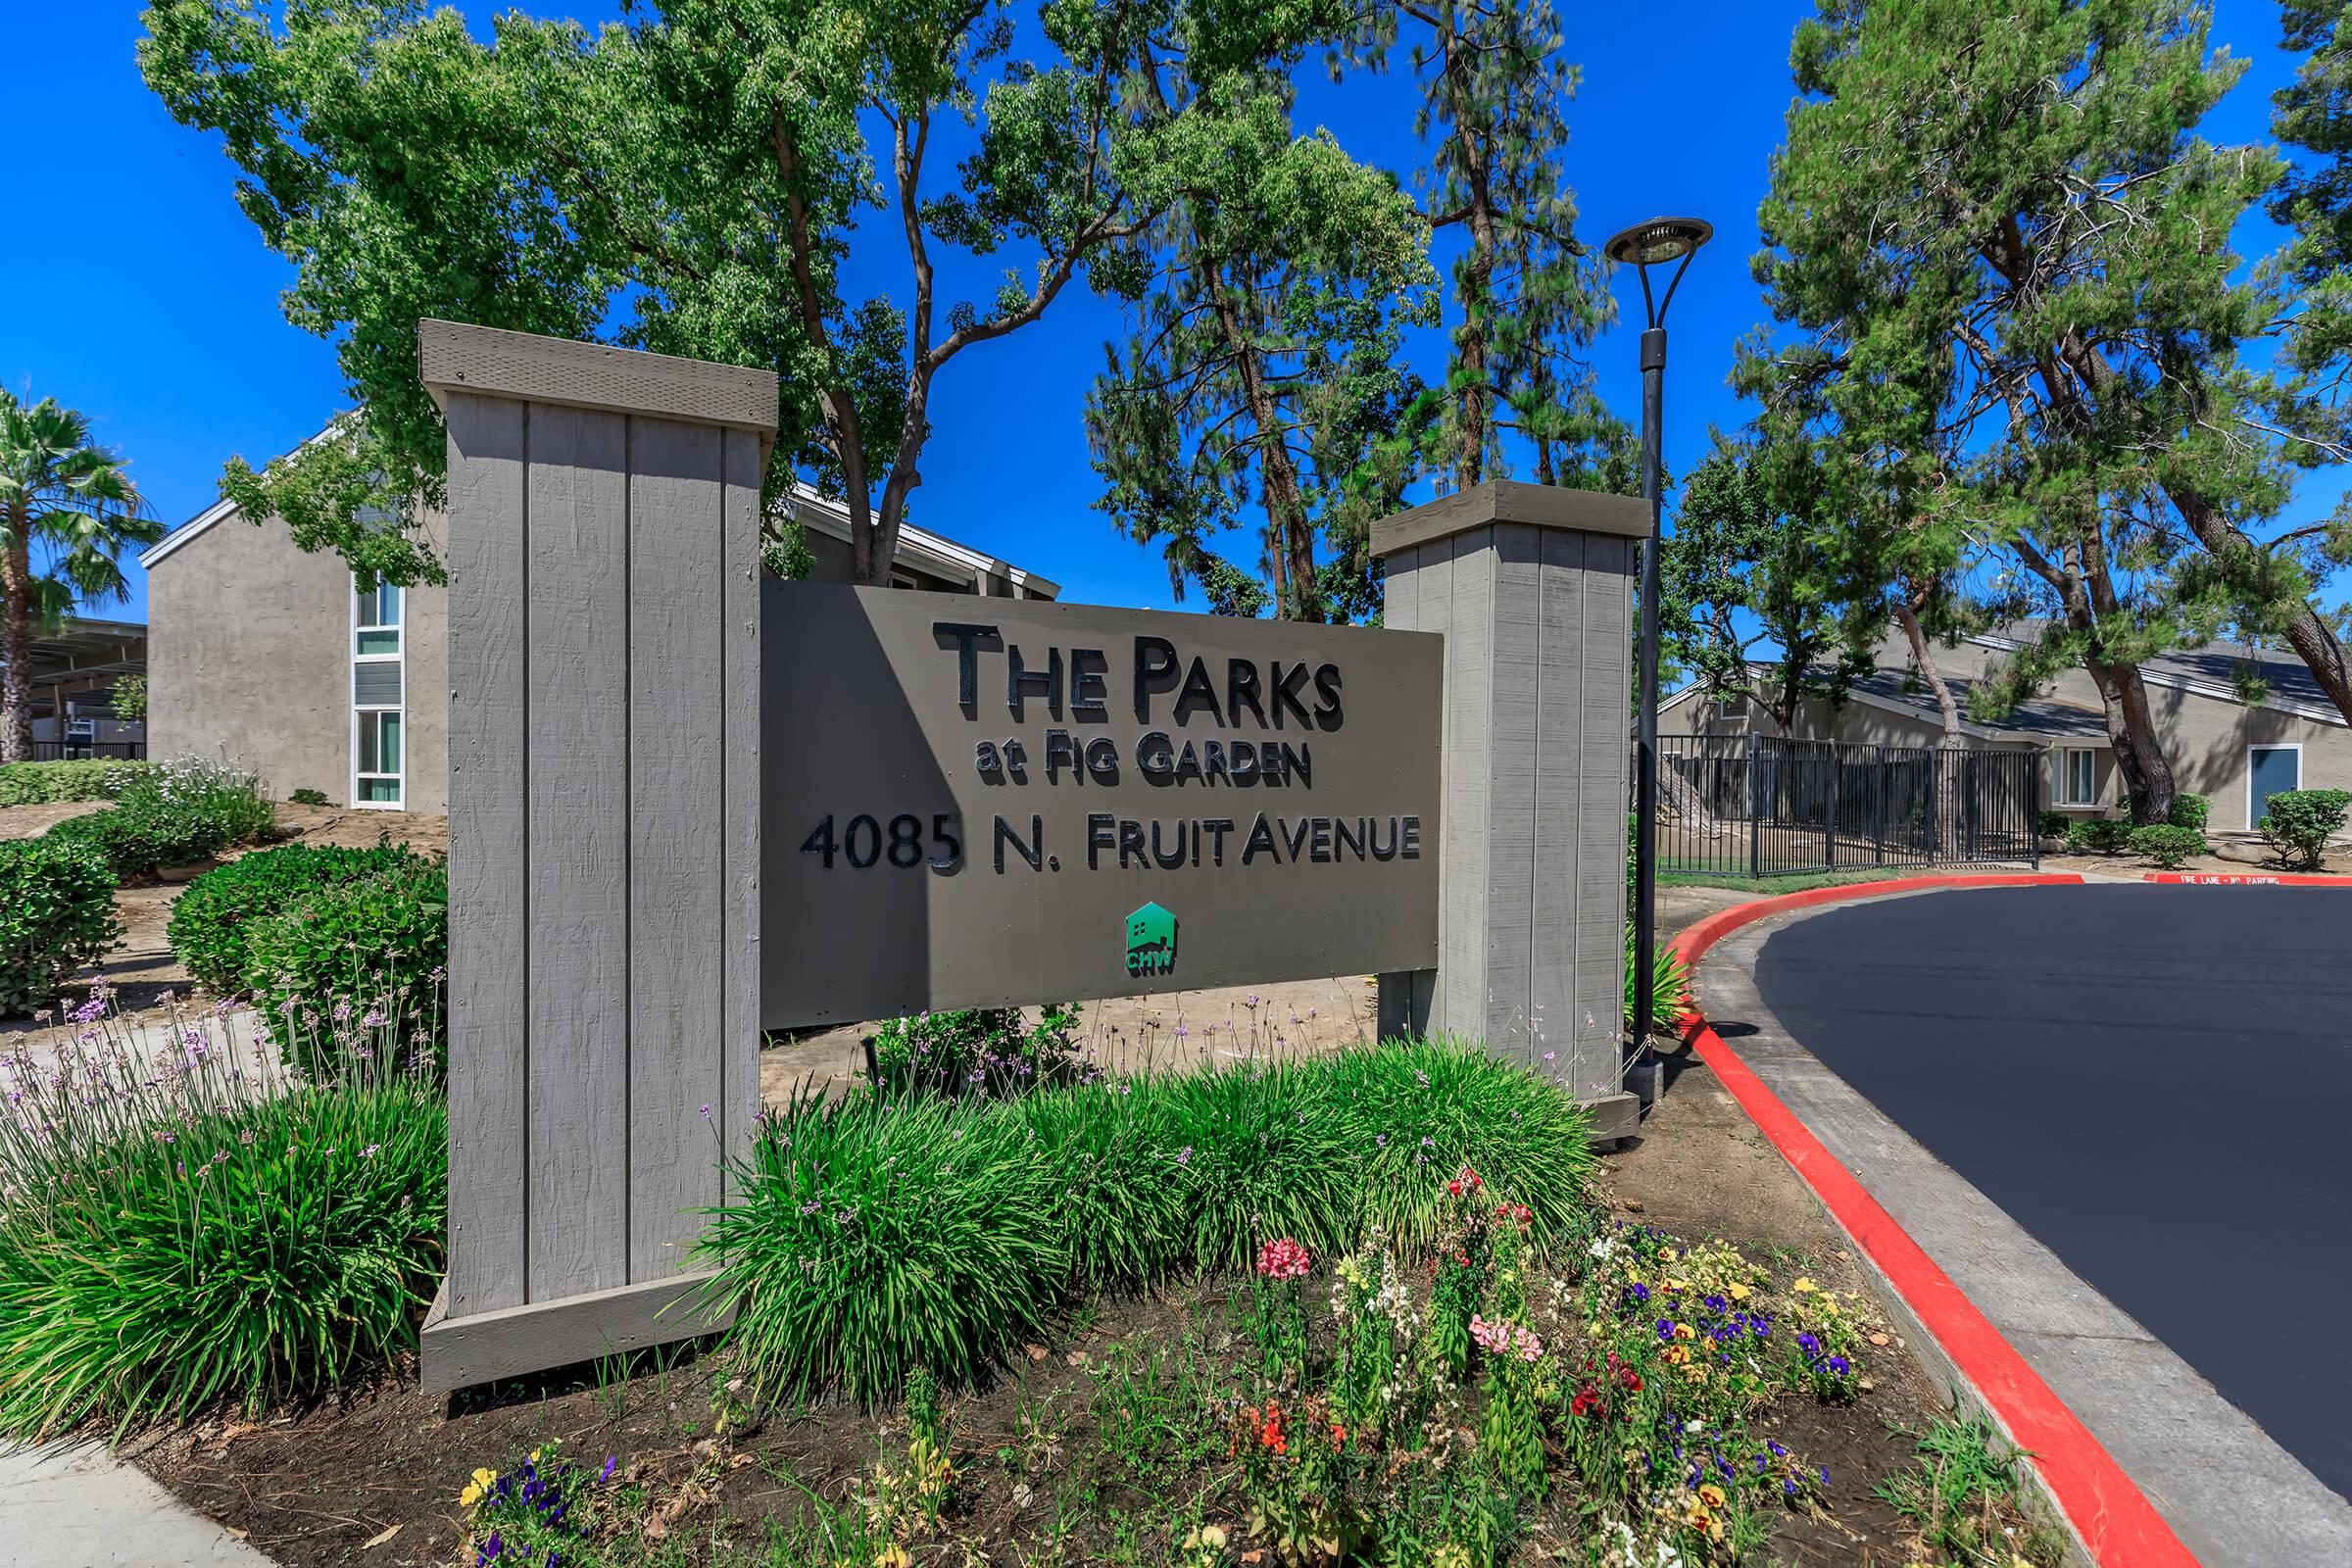 The Parks at Fig Garden monument sign